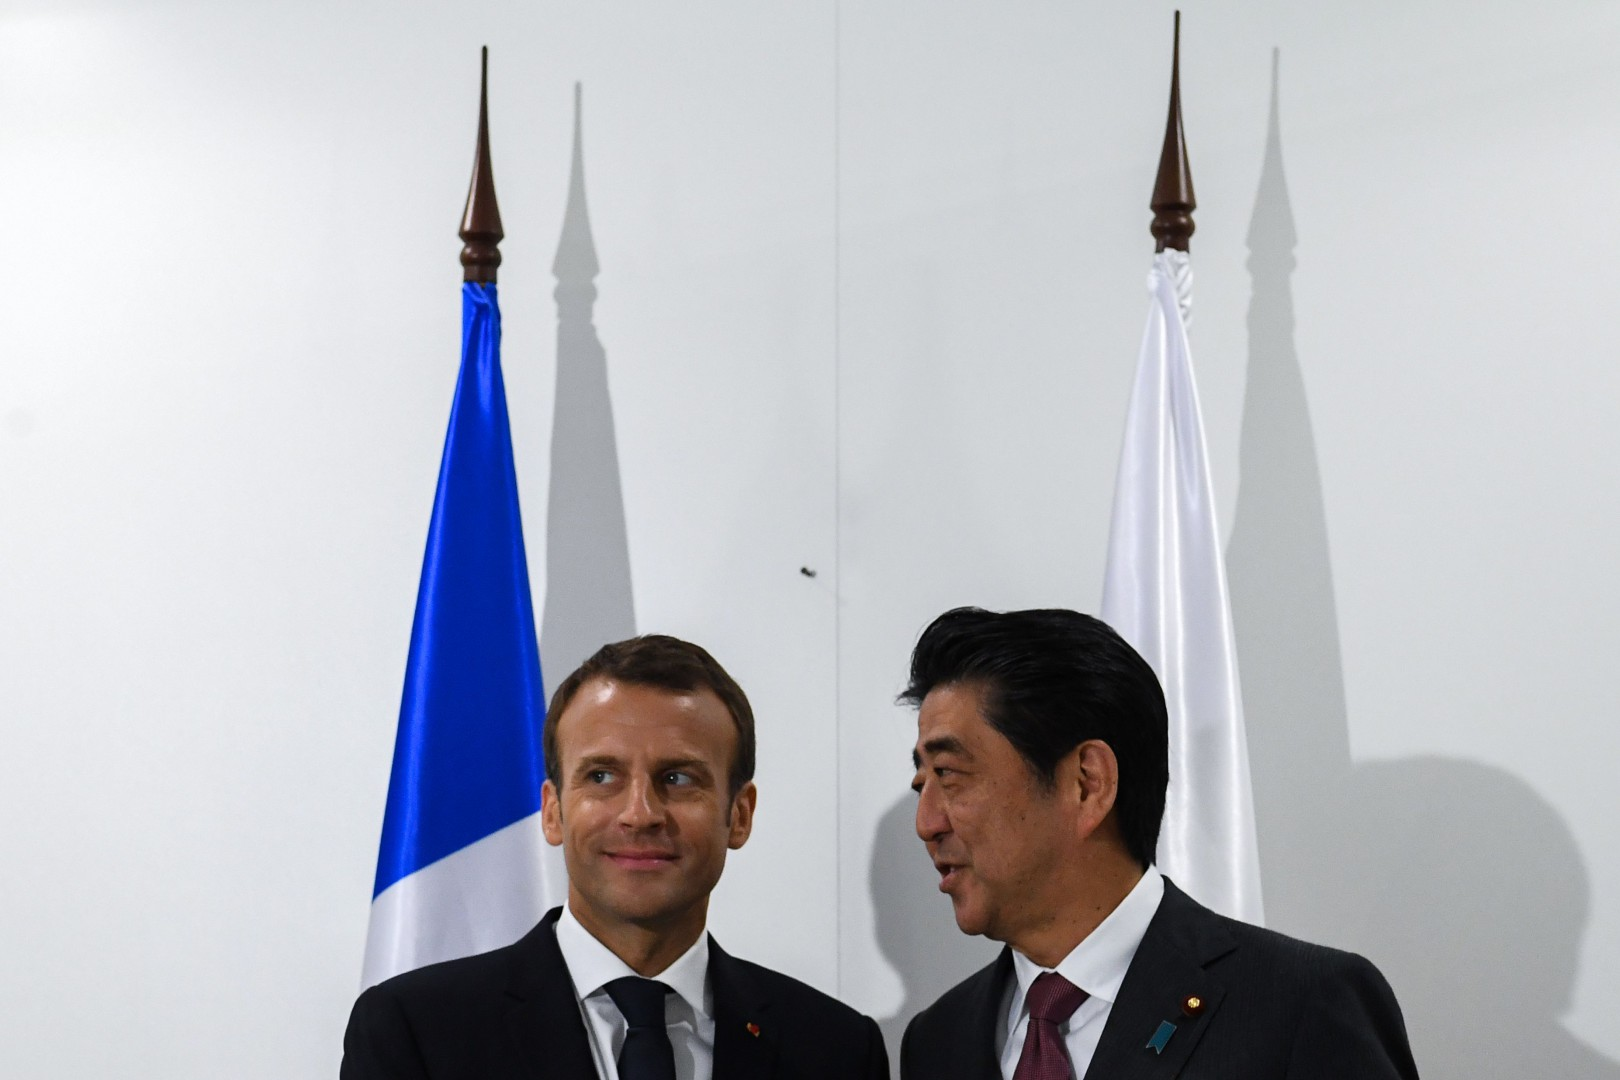 French President Emmanuel Macron (L) meets with Japanese Prime Minister Shinzo Abe on the sidelines of the Saint Petersburg International Economic Forum on May 25, 2018 in Saint Petersburg. / AFP PHOTO / Kirill KUDRYAVTSEV